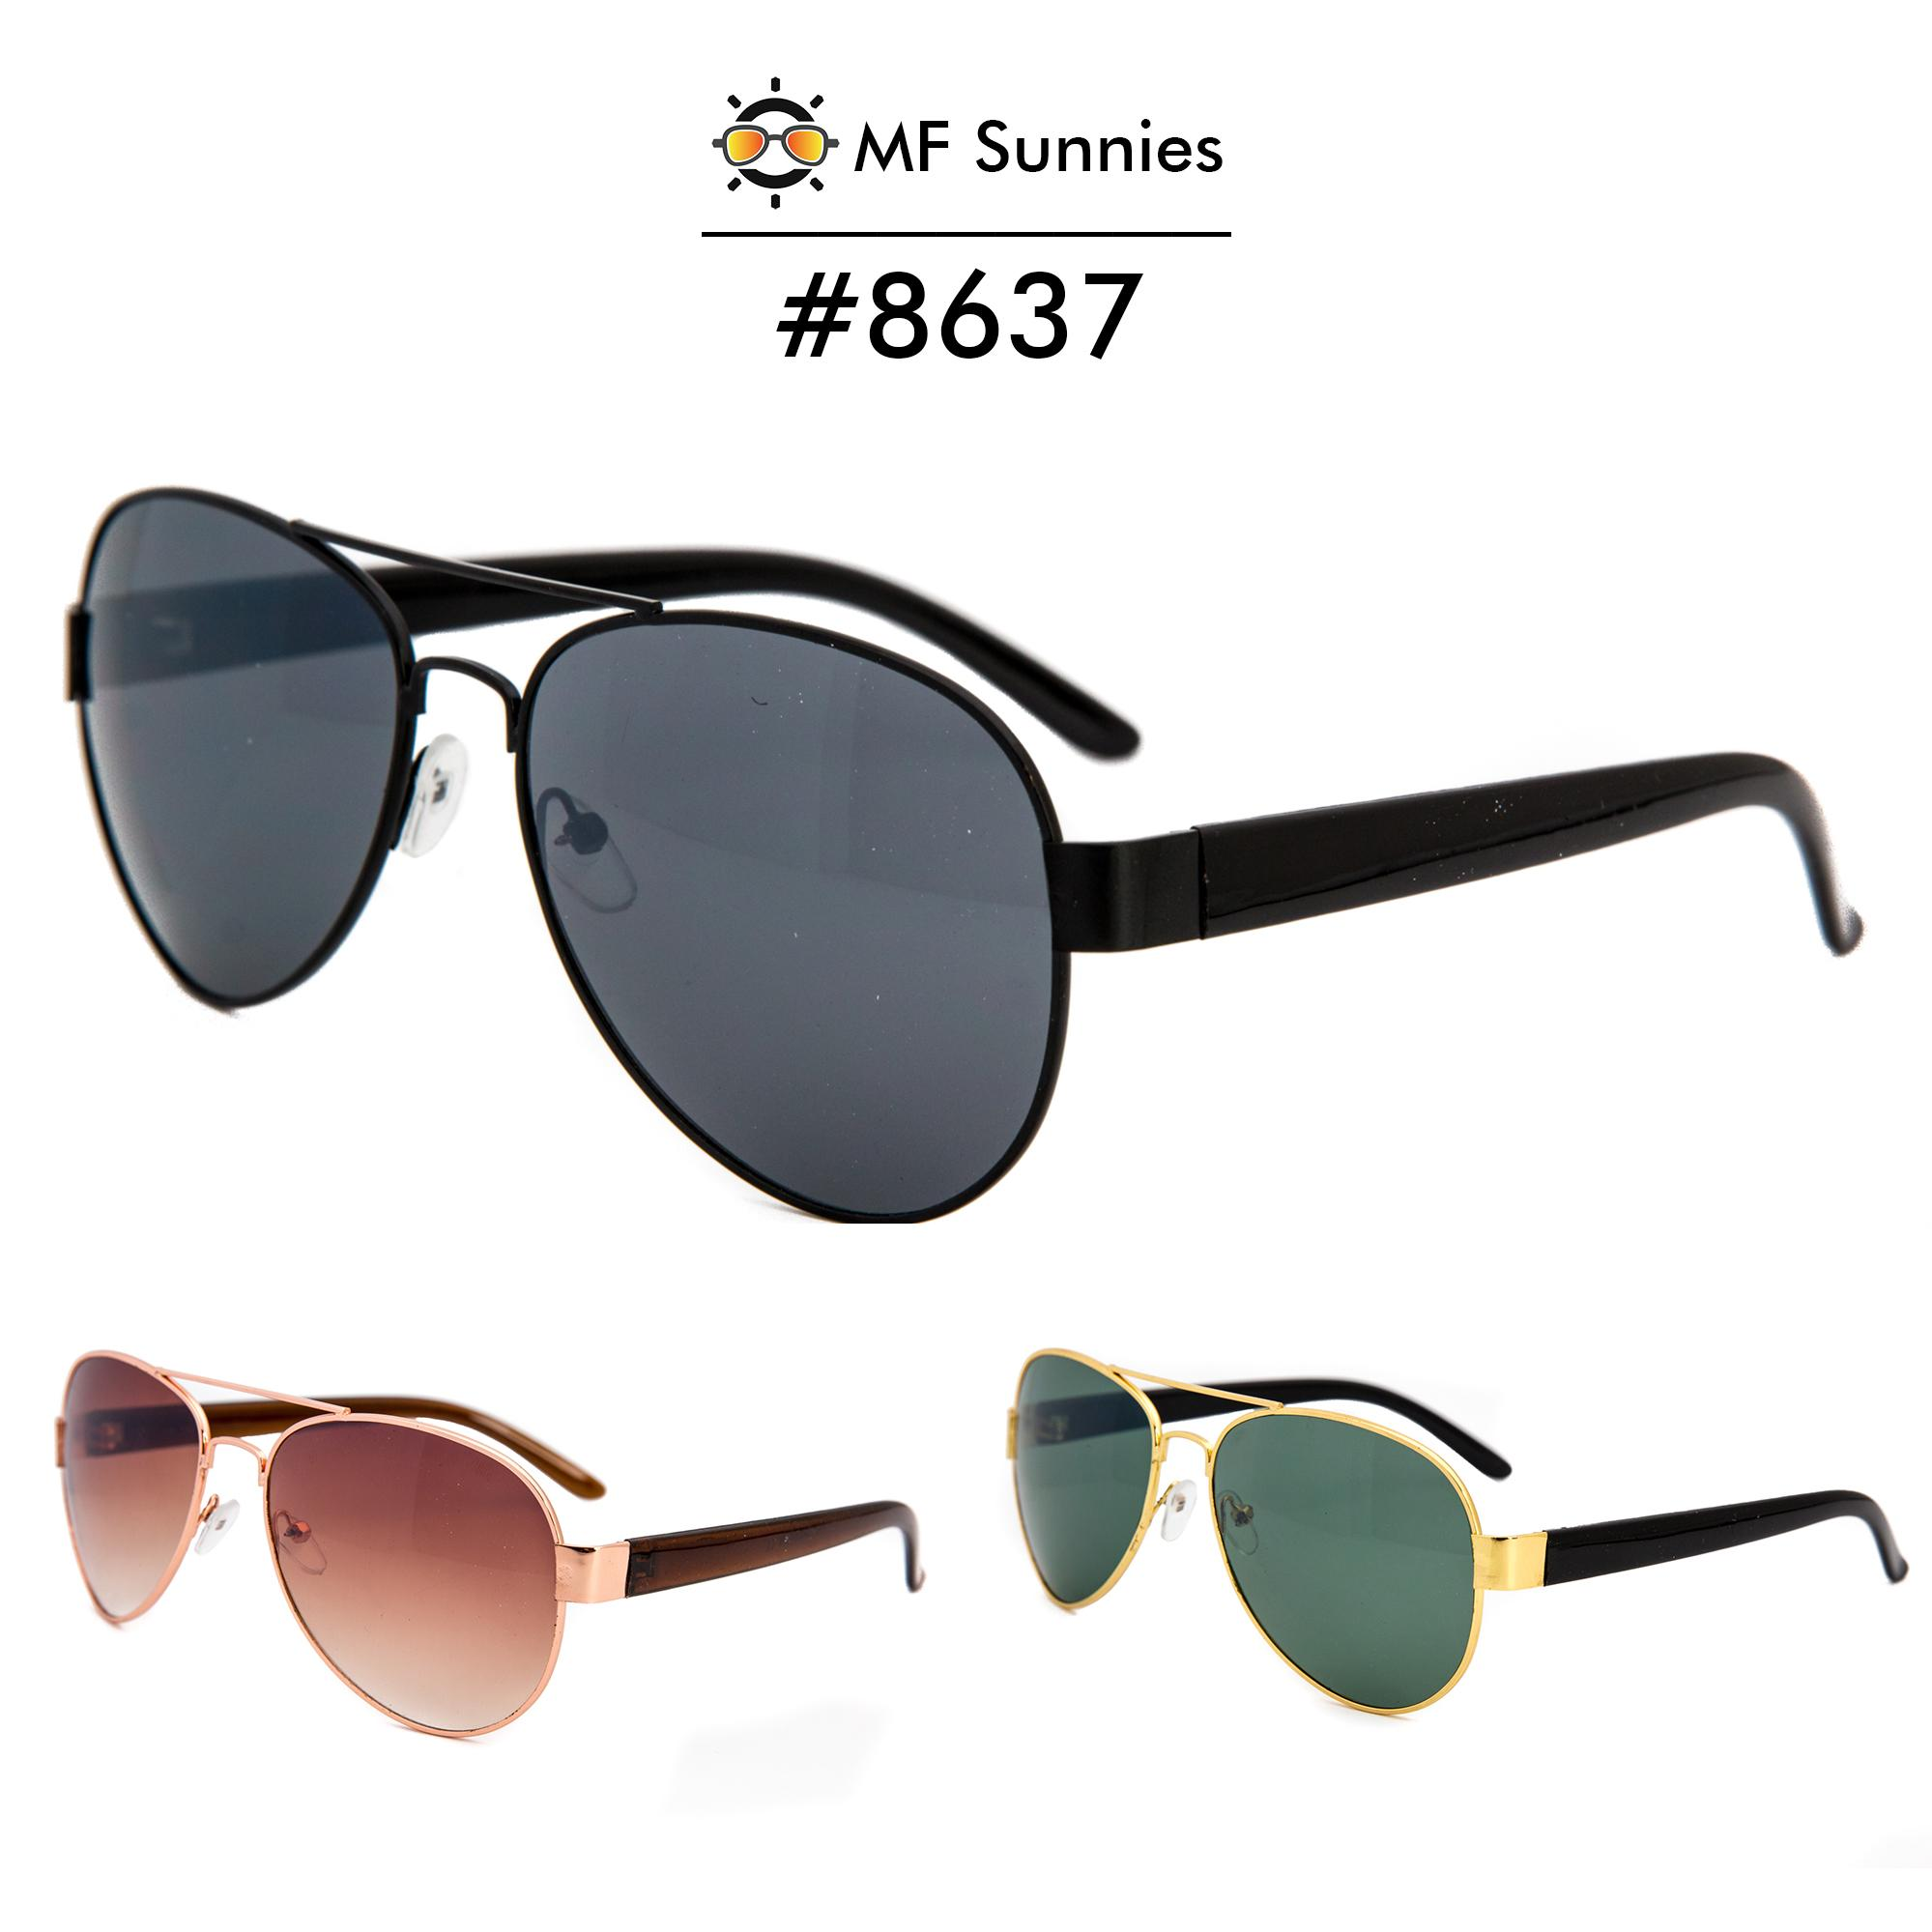 47dc7c4f11f12 MFSunnies Classic Aviator Sunglass Metal Frame Fashion Eyewear  8637